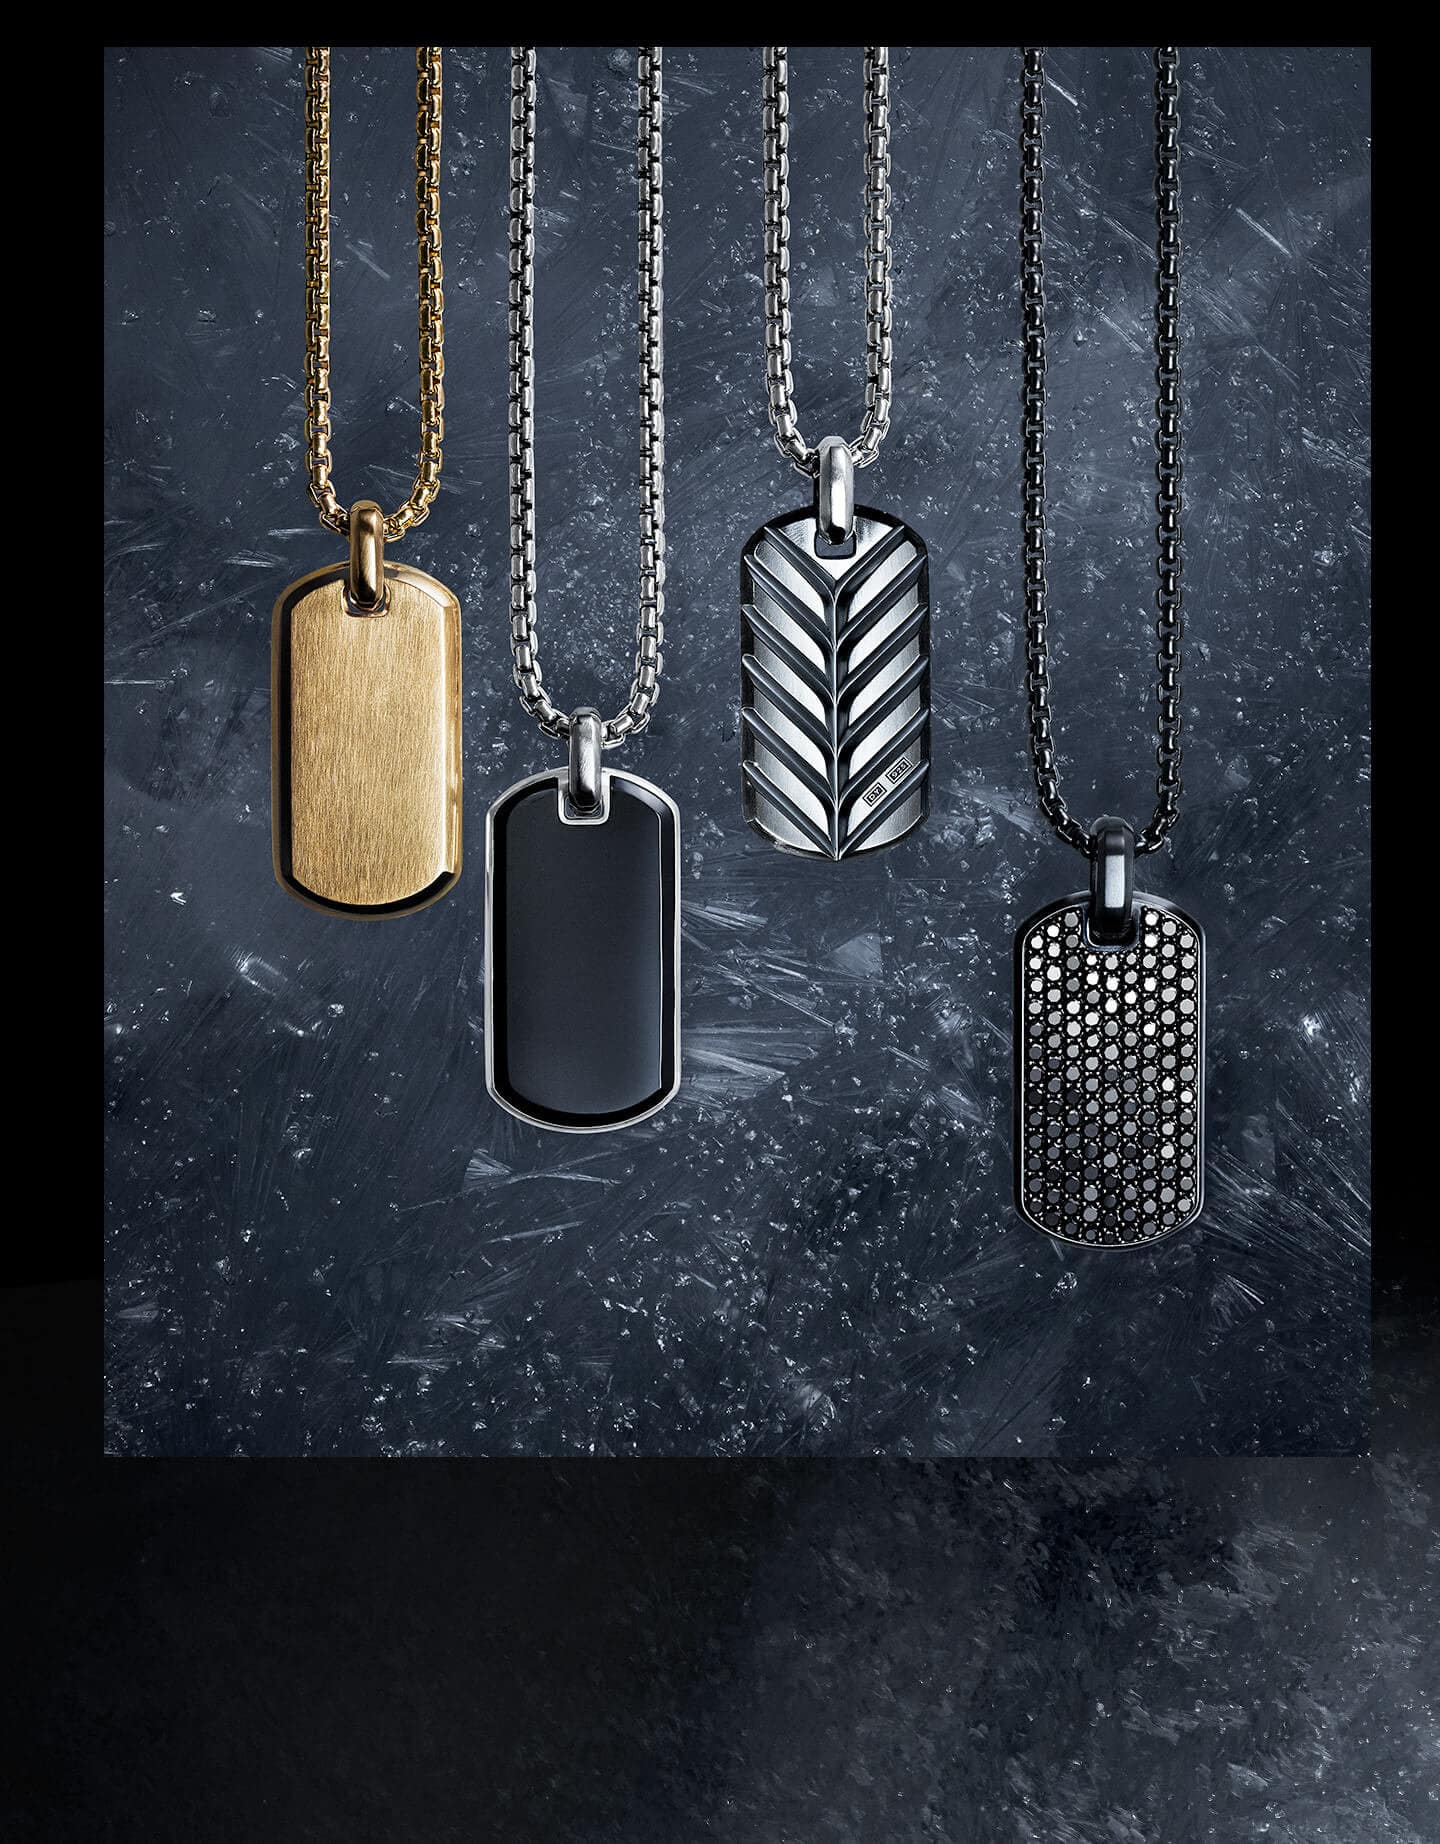 A color photo shows a row of four David Yurman men's tags strung on Chain necklaces and laying at different levels atop a dark, icy surface dusted with snowflakes. The jewelry is crafted from 18K yellow gold, sterling silver or black titanium. From left is a Streamline tag, an Exotic Stone tag with black onyx, a Streamline tag sculpted with Chevron motifs and a Pavé tag with pavé black diamonds.